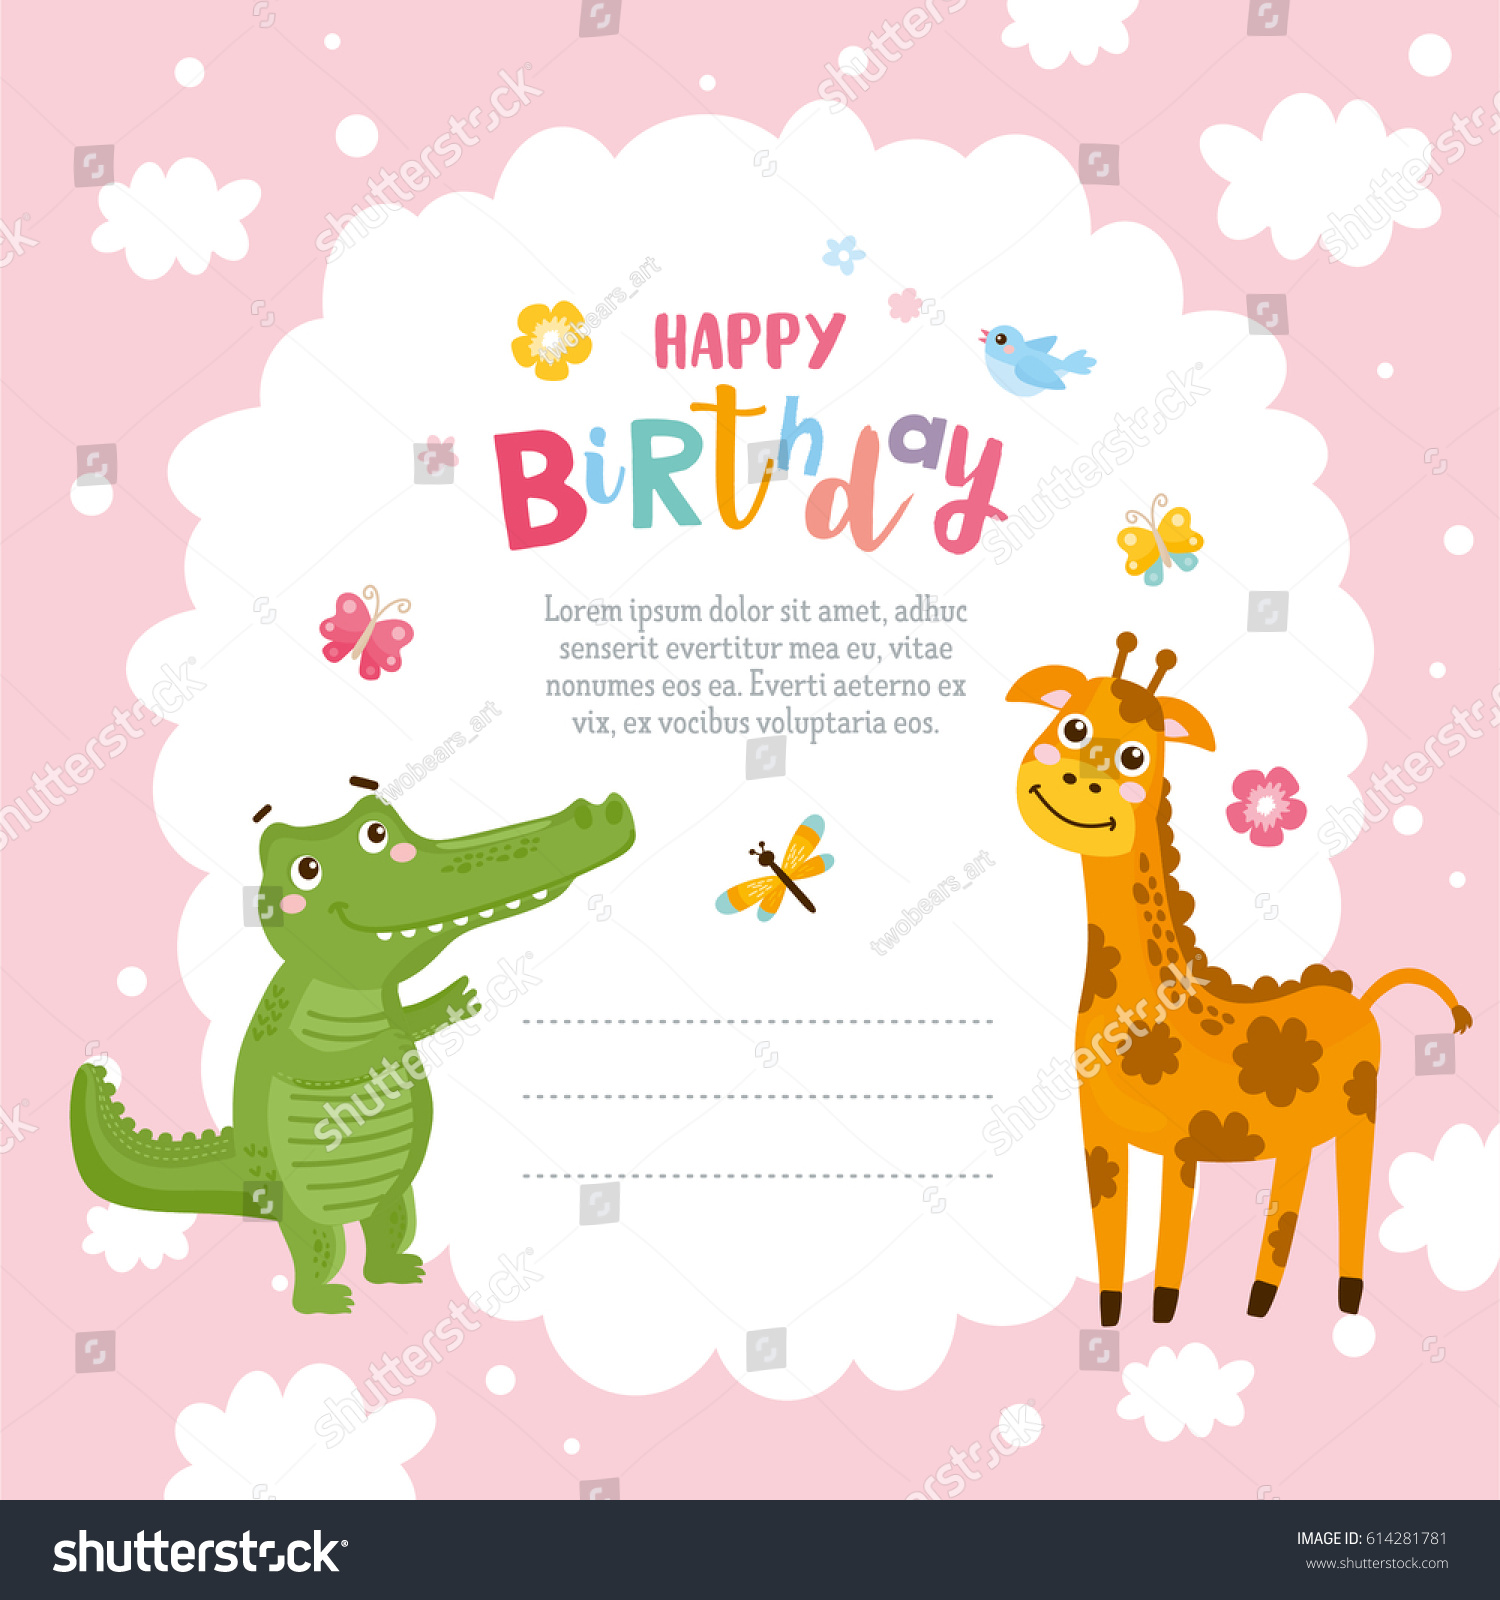 Greeting Card Design Cute Alligator Giraffe Stock Vector HD (Royalty ...